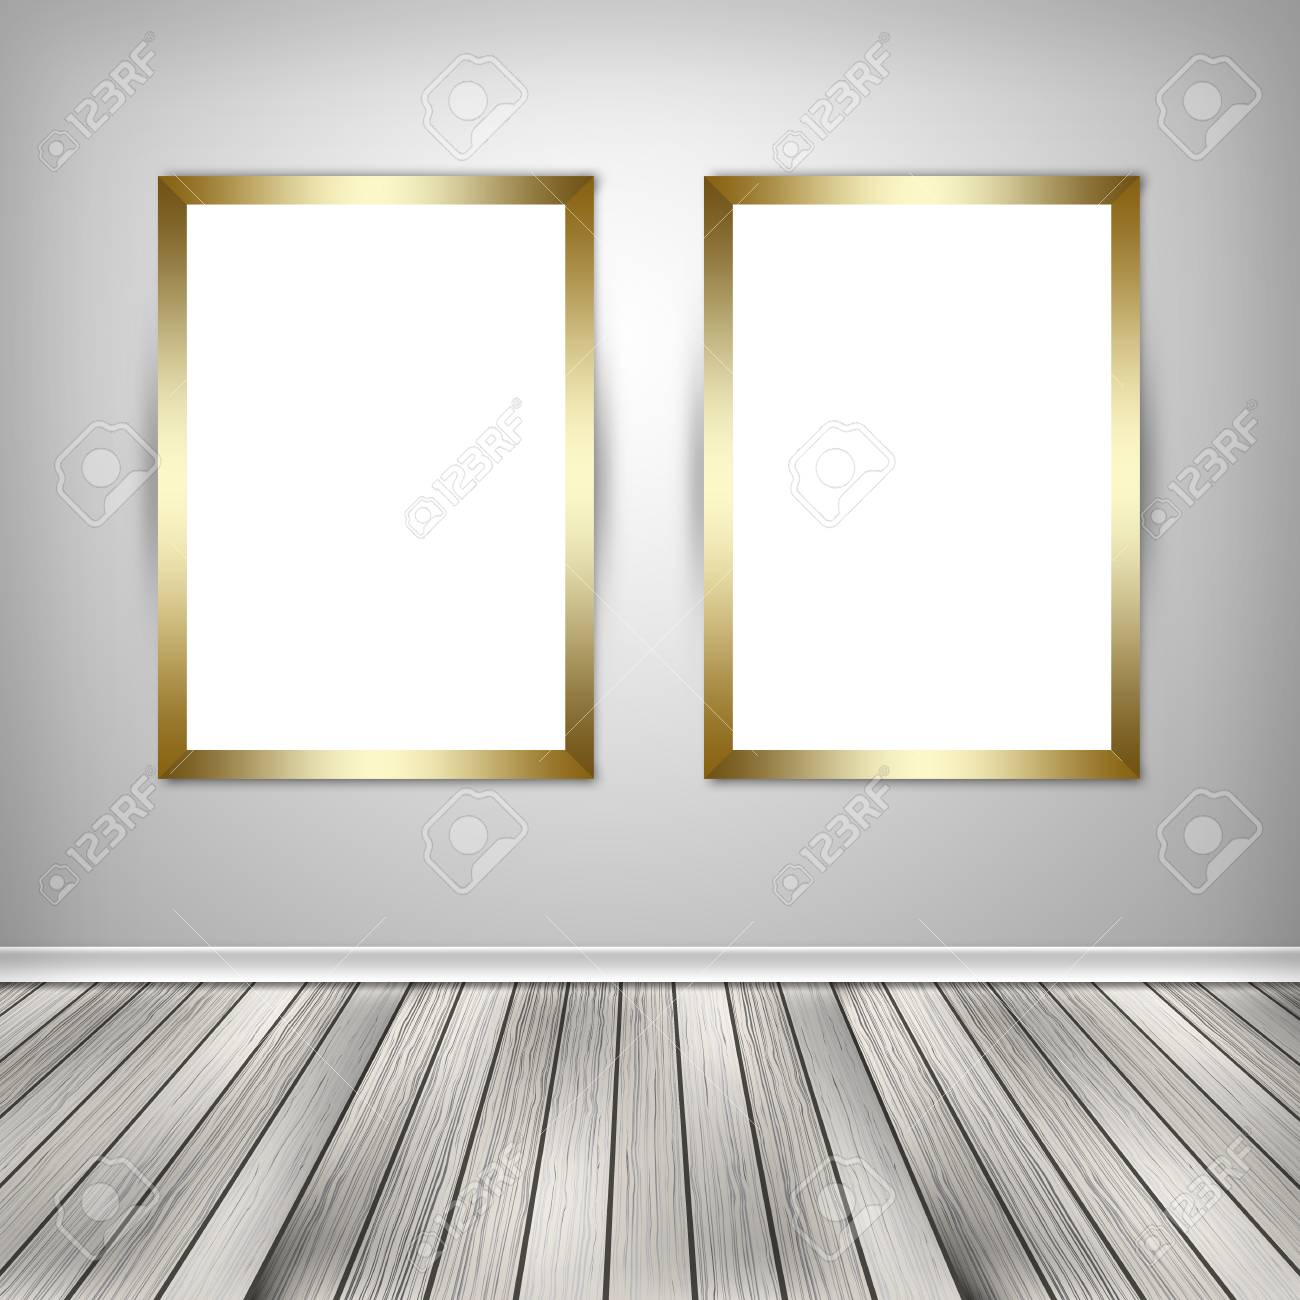 gallery interior with two empty frames on wallgallery interior with two empty frames on wall stock photo 65109020